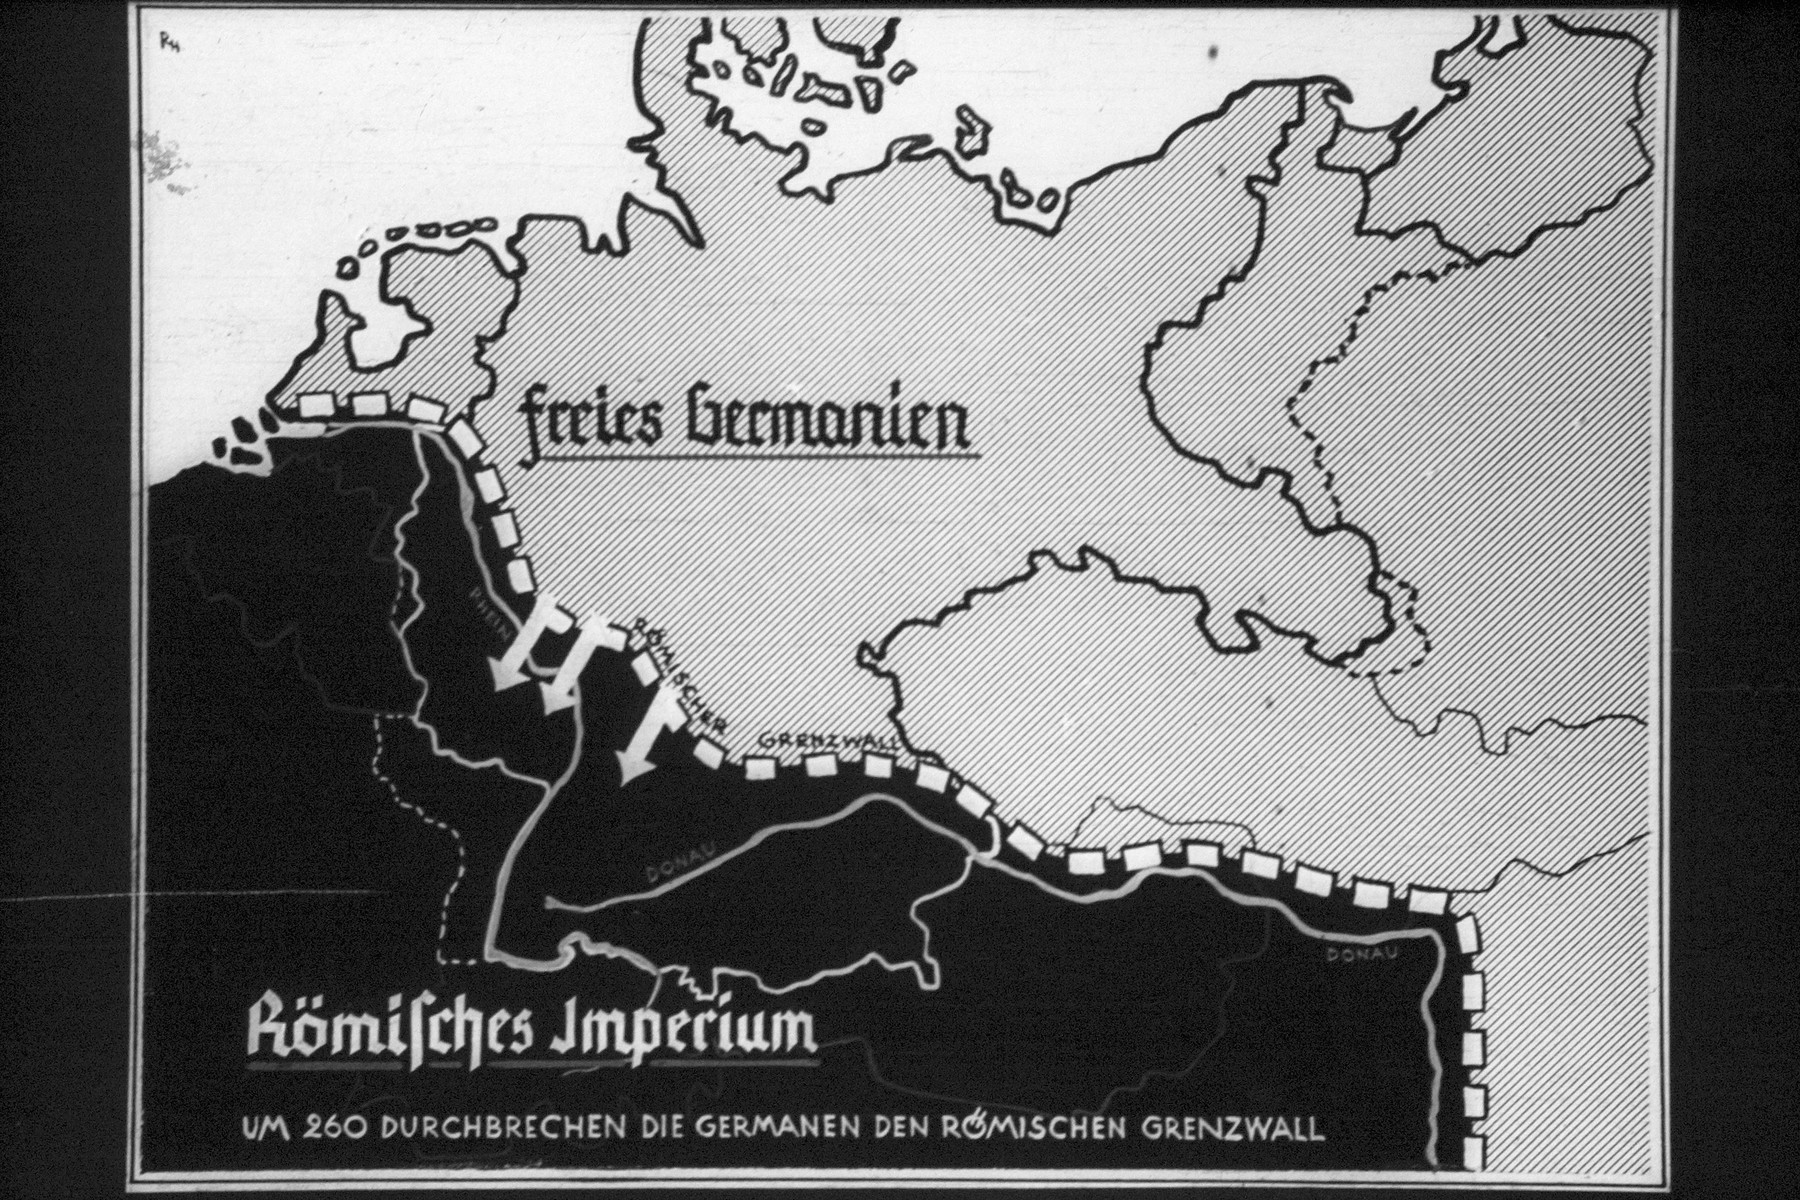 """26th Nazi propaganda slide for a Hitler Youth educational presentation entitled """"5000 years of German Culture.""""  Freies Bermanien Kömisches Imperium // Free Germany (German Imperium) Roman Empire"""